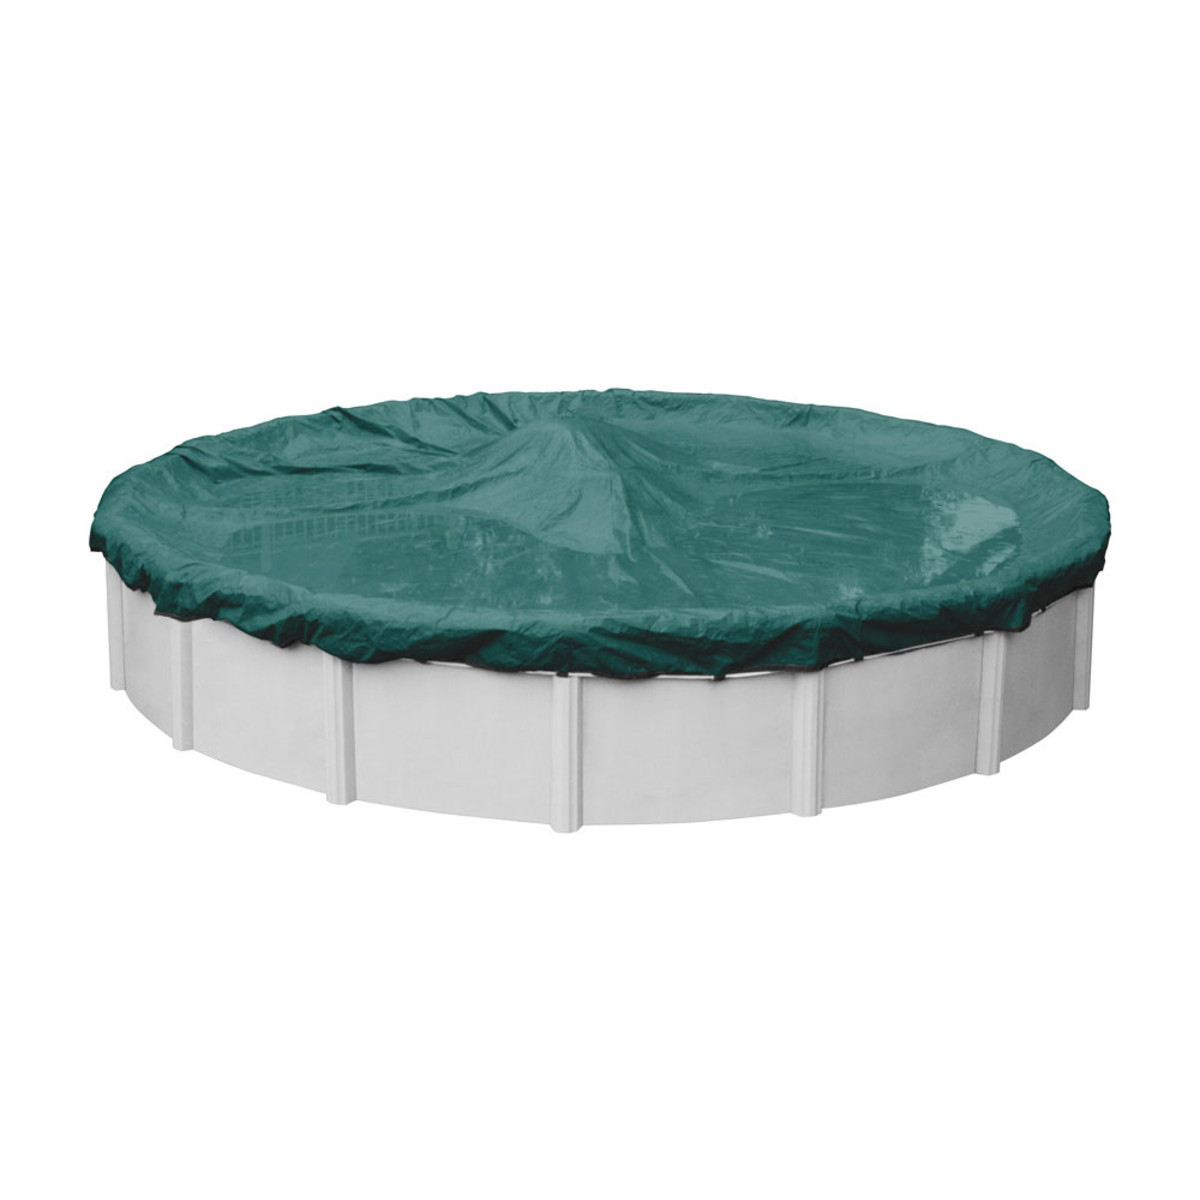 Robelle Supreme Plus 24 39 Round Winter Pool Cover Teal Green Above Ground Pool Covers